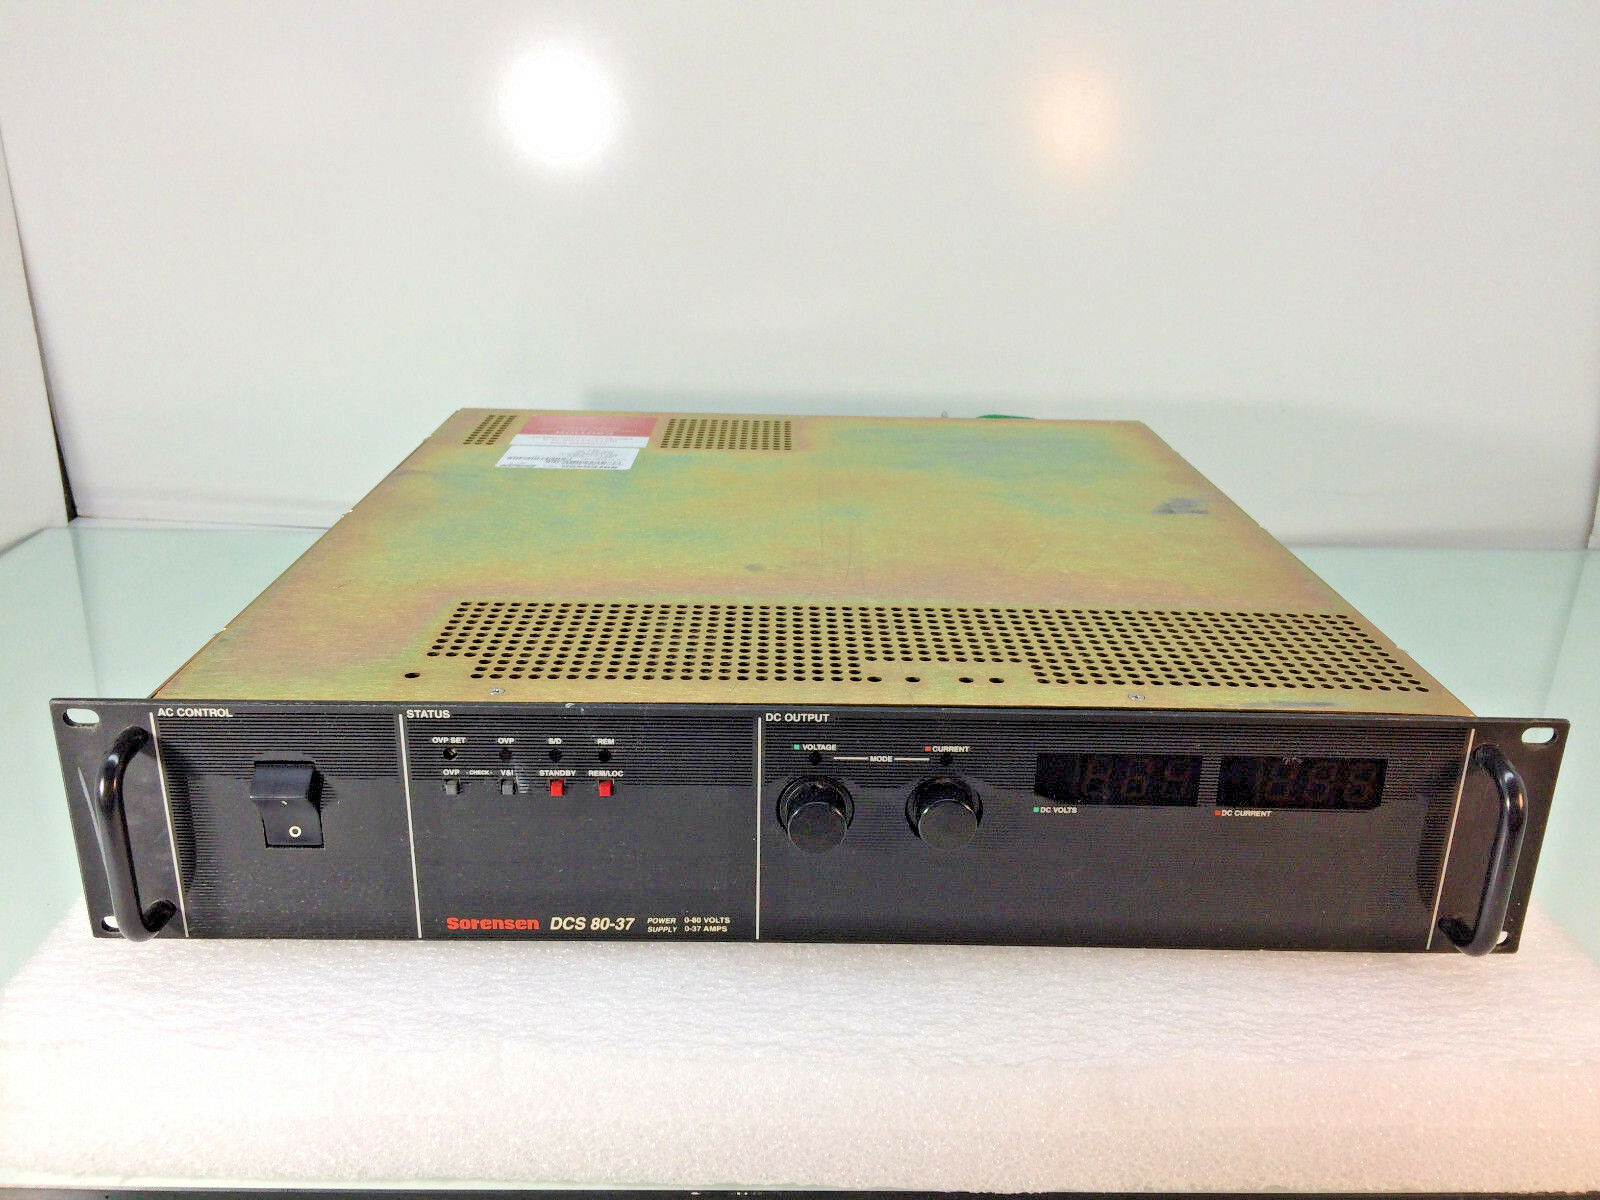 sorensen-dcs-80-37-dc-programmable-switching-power-supply-3kw-80v-37a-used-equipment-0.jpg